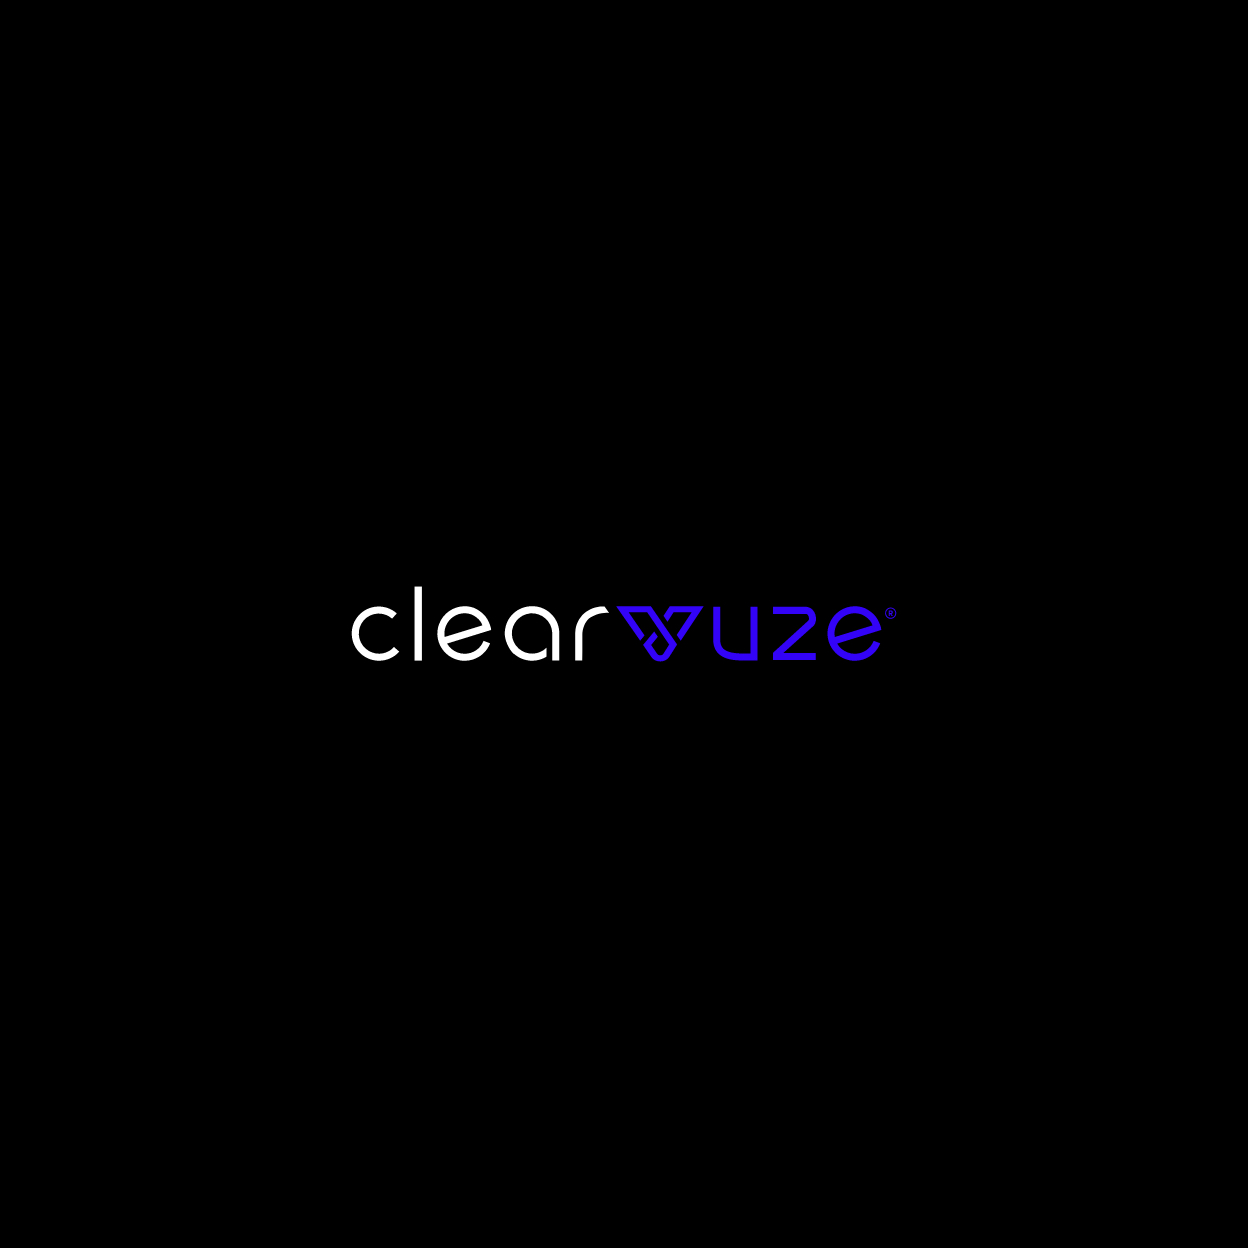 Illustration from Clearvuze project